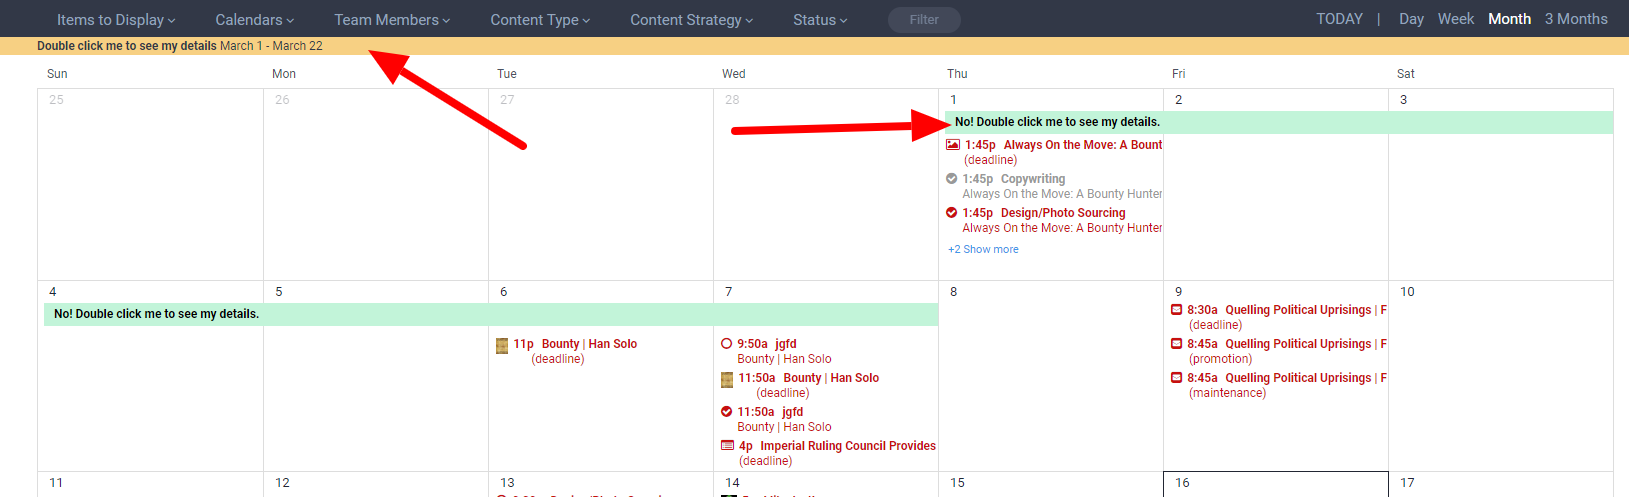 Campaign-on-calendar.png